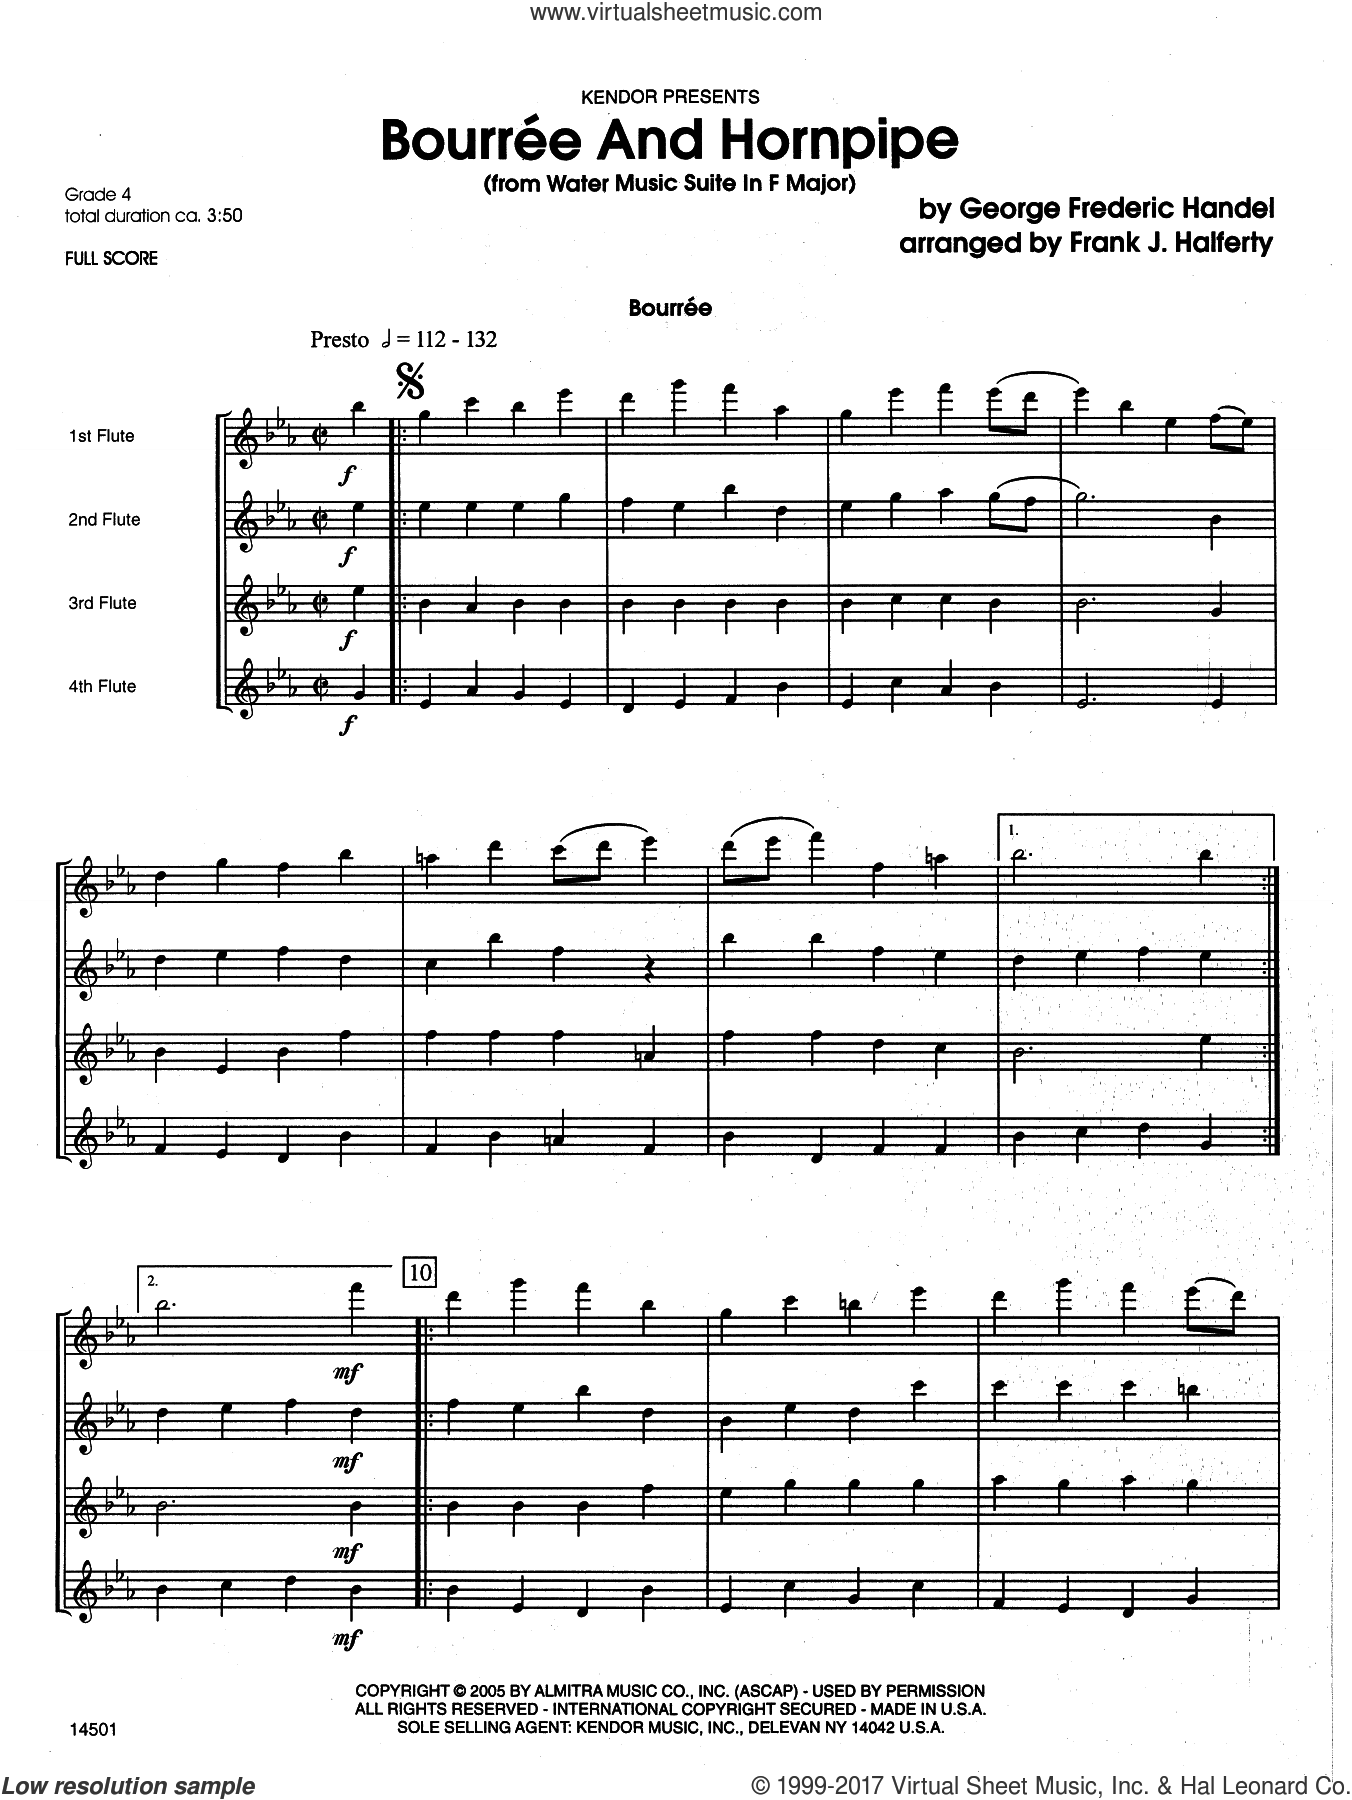 Bourree And Hornpipe (from Water Music Suite In F Major) (COMPLETE) sheet music for flute quartet by George Frideric Handel and Frank J. Halferty. Score Image Preview.